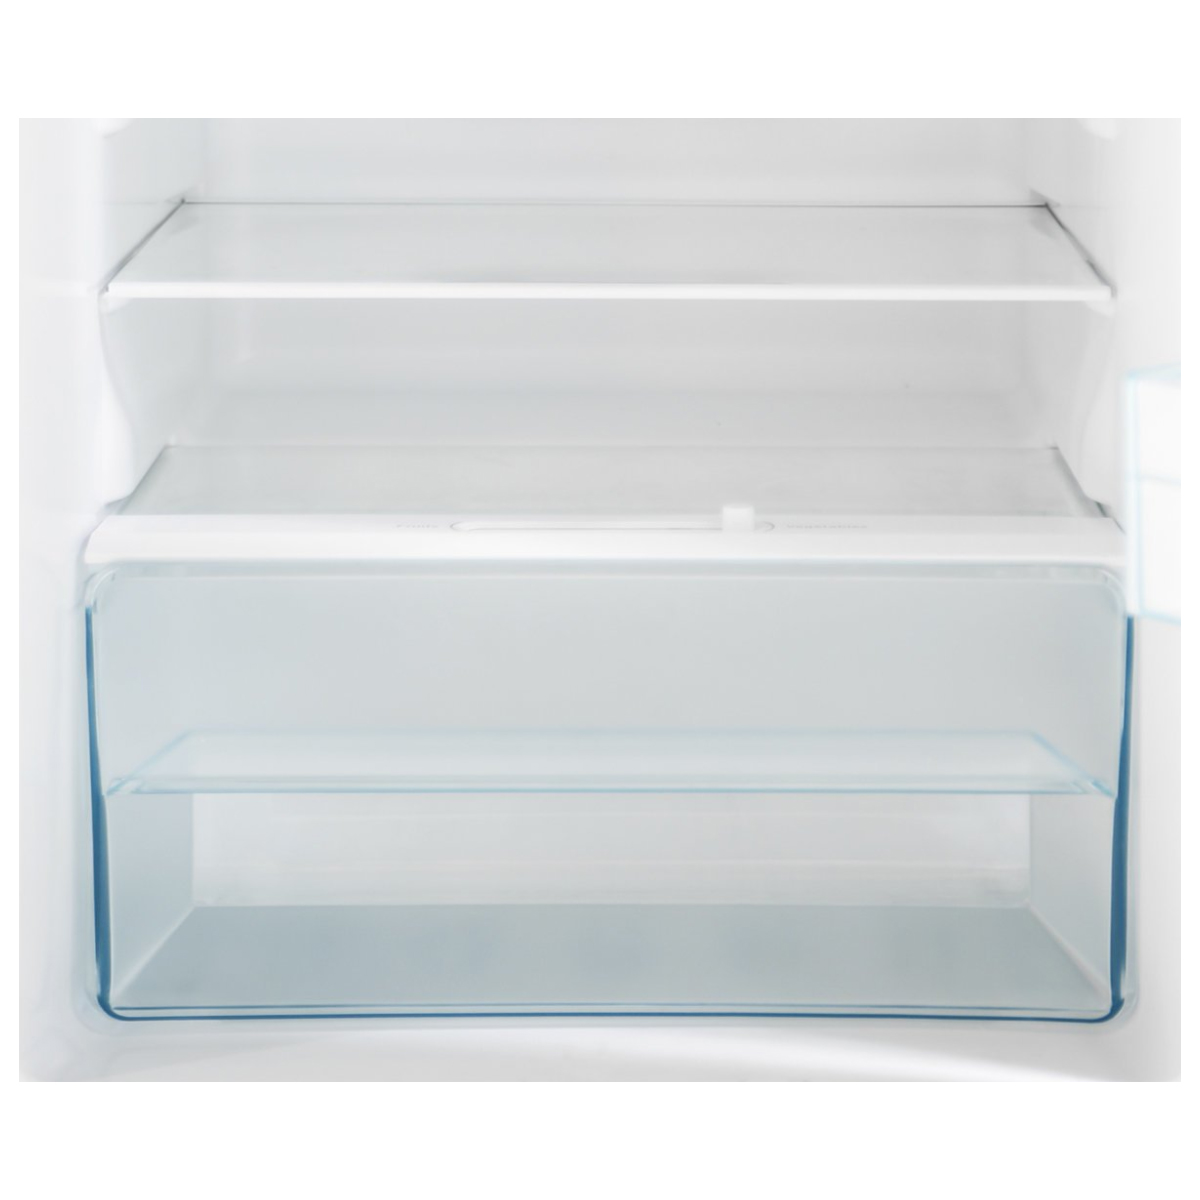 Lemair LTM221W 221Litres Top Mount Fridge 104745